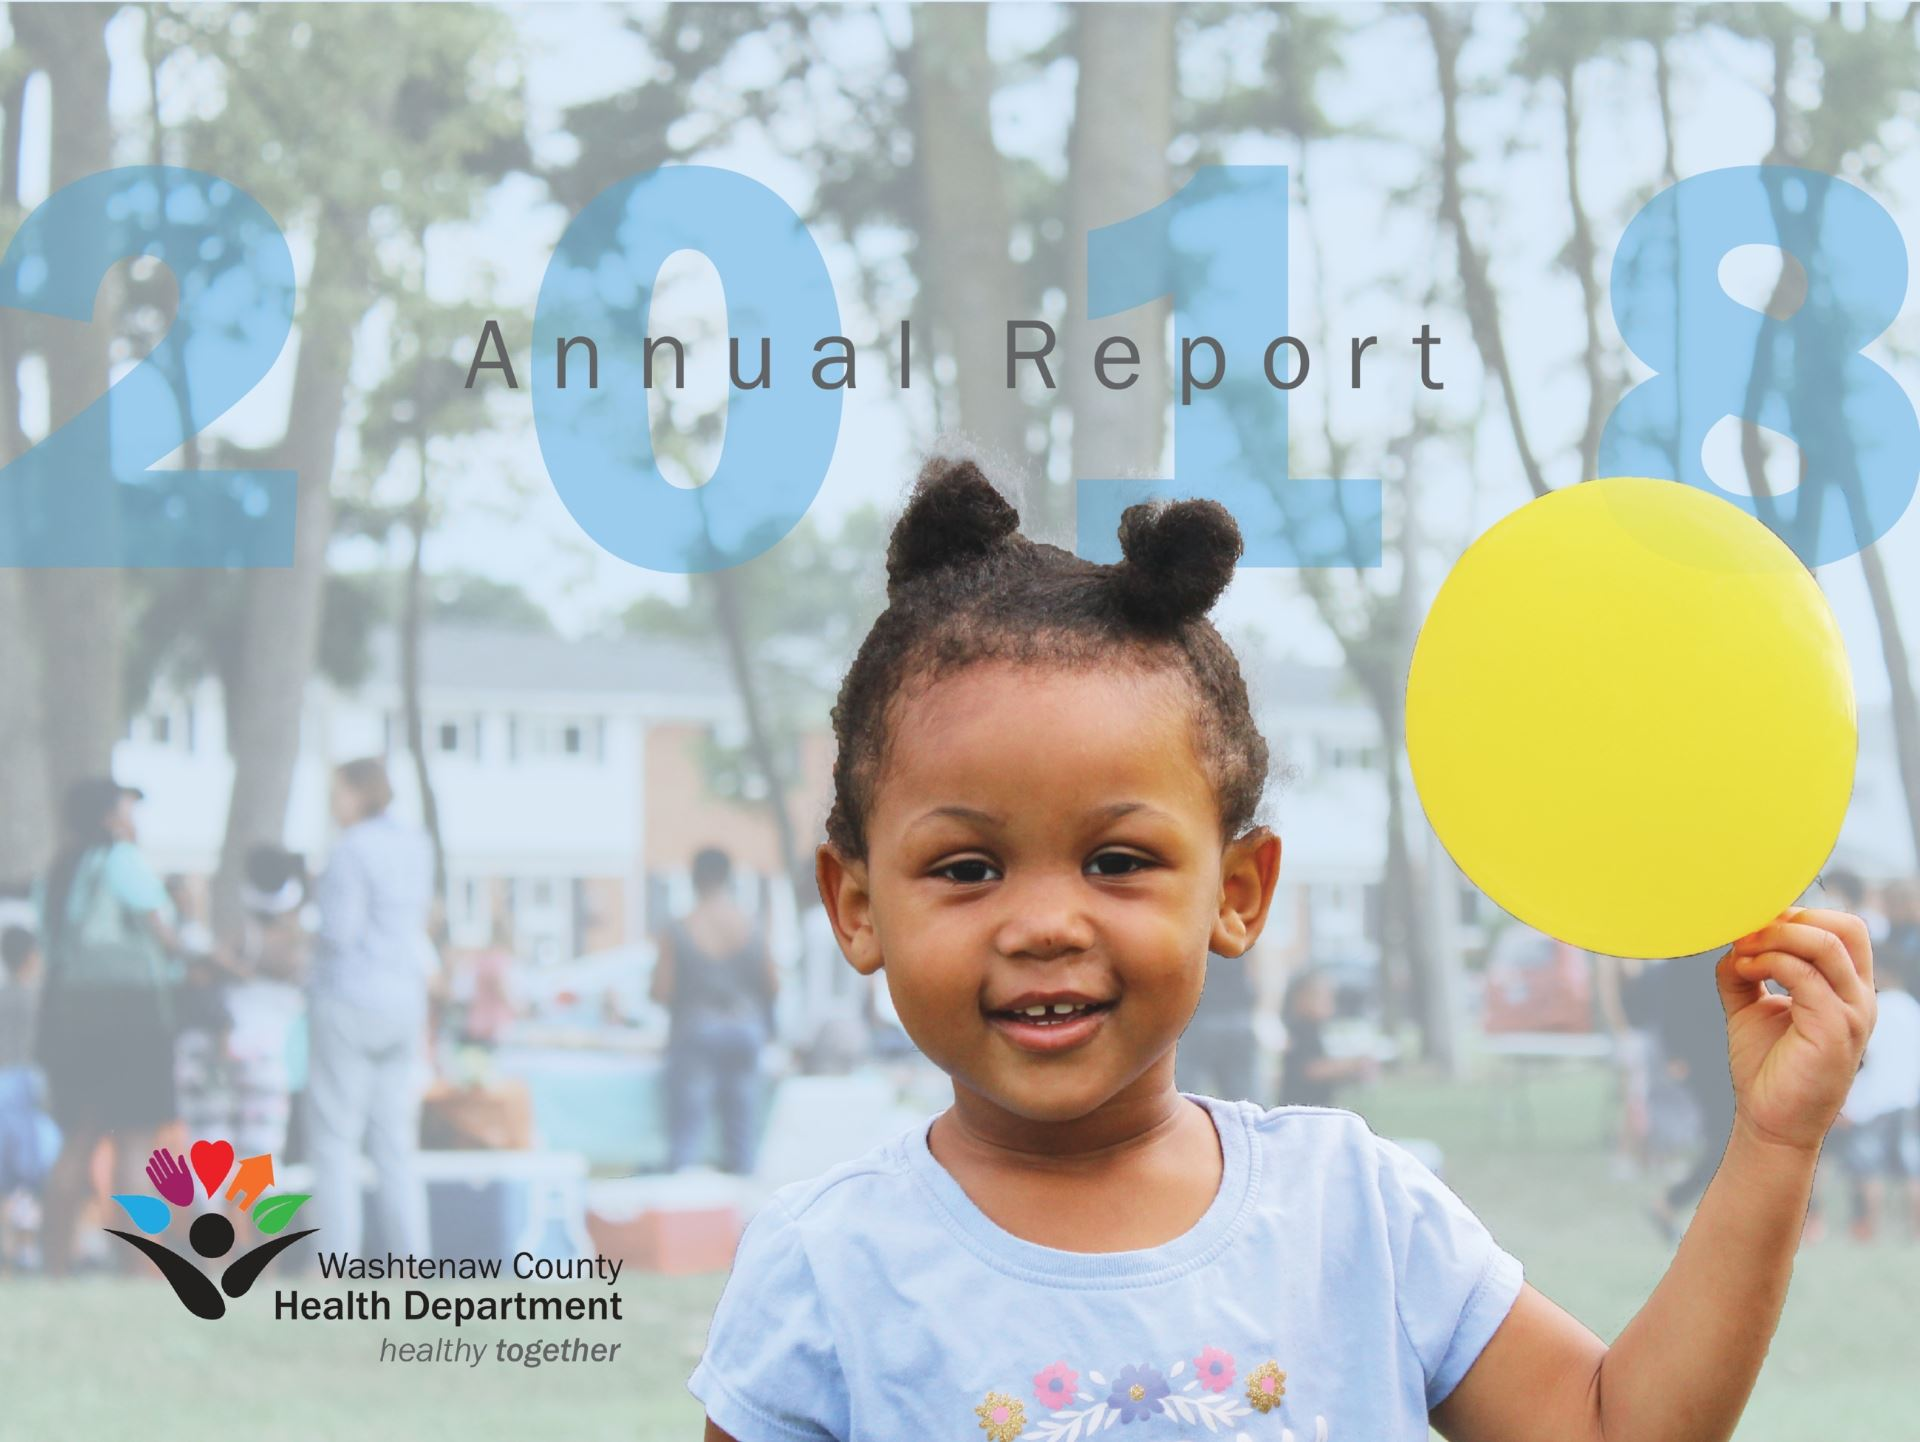 Annual Report Cover newsflash